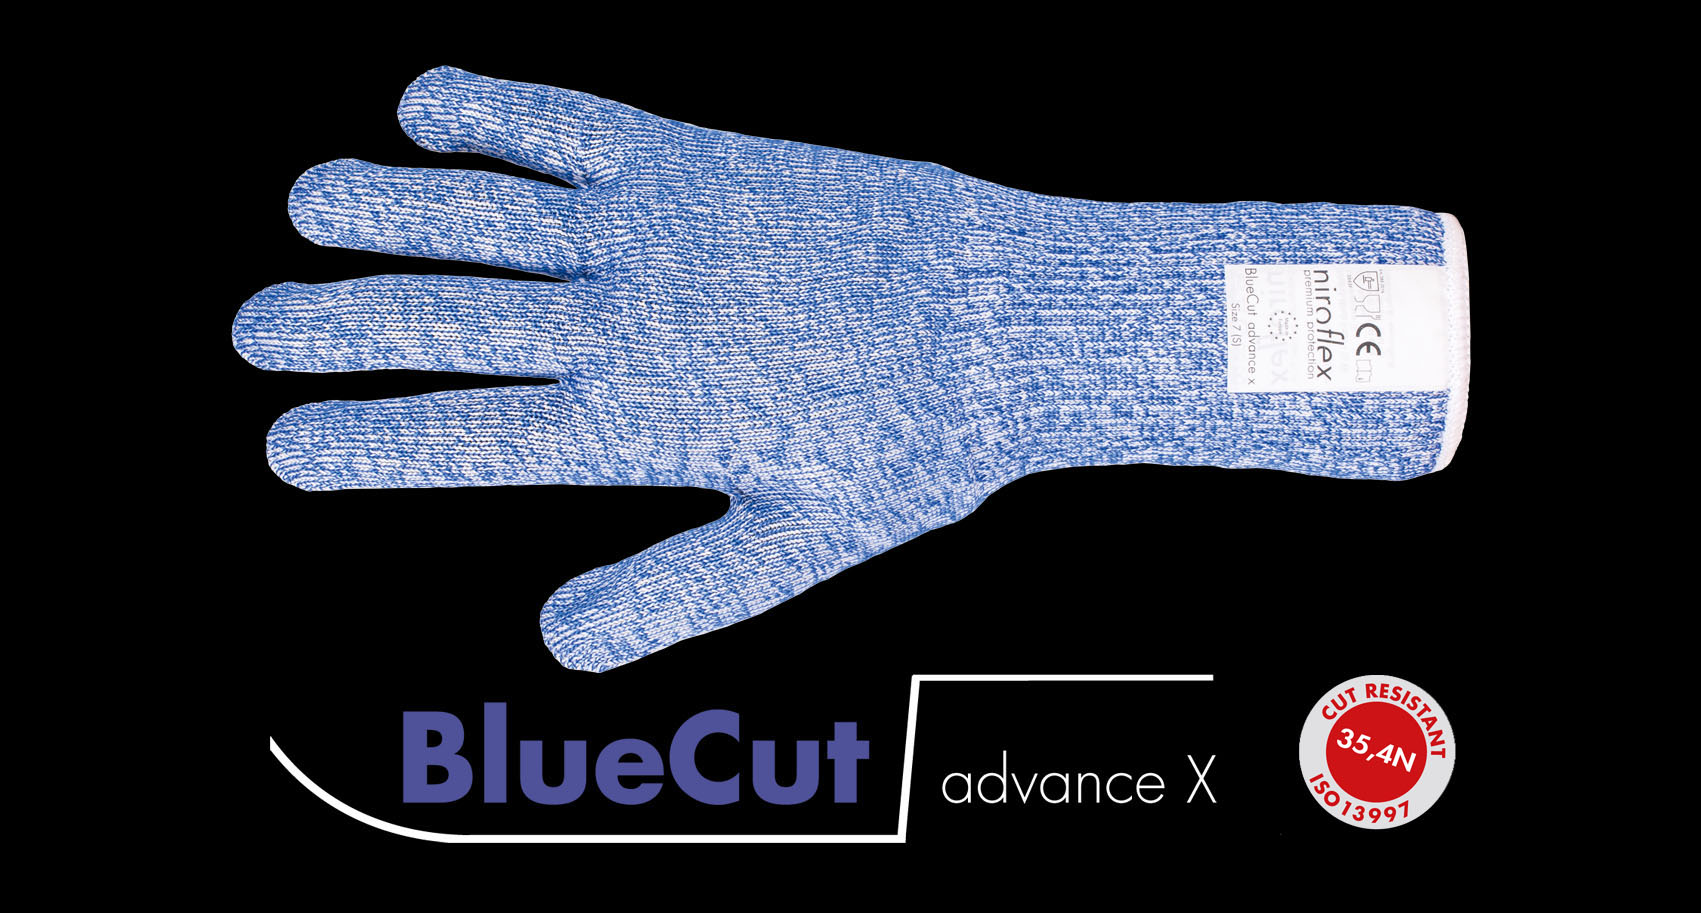 BlueCut advance / BlueCut advance x / BlueCut comfort / BlueCut comfort sleeve